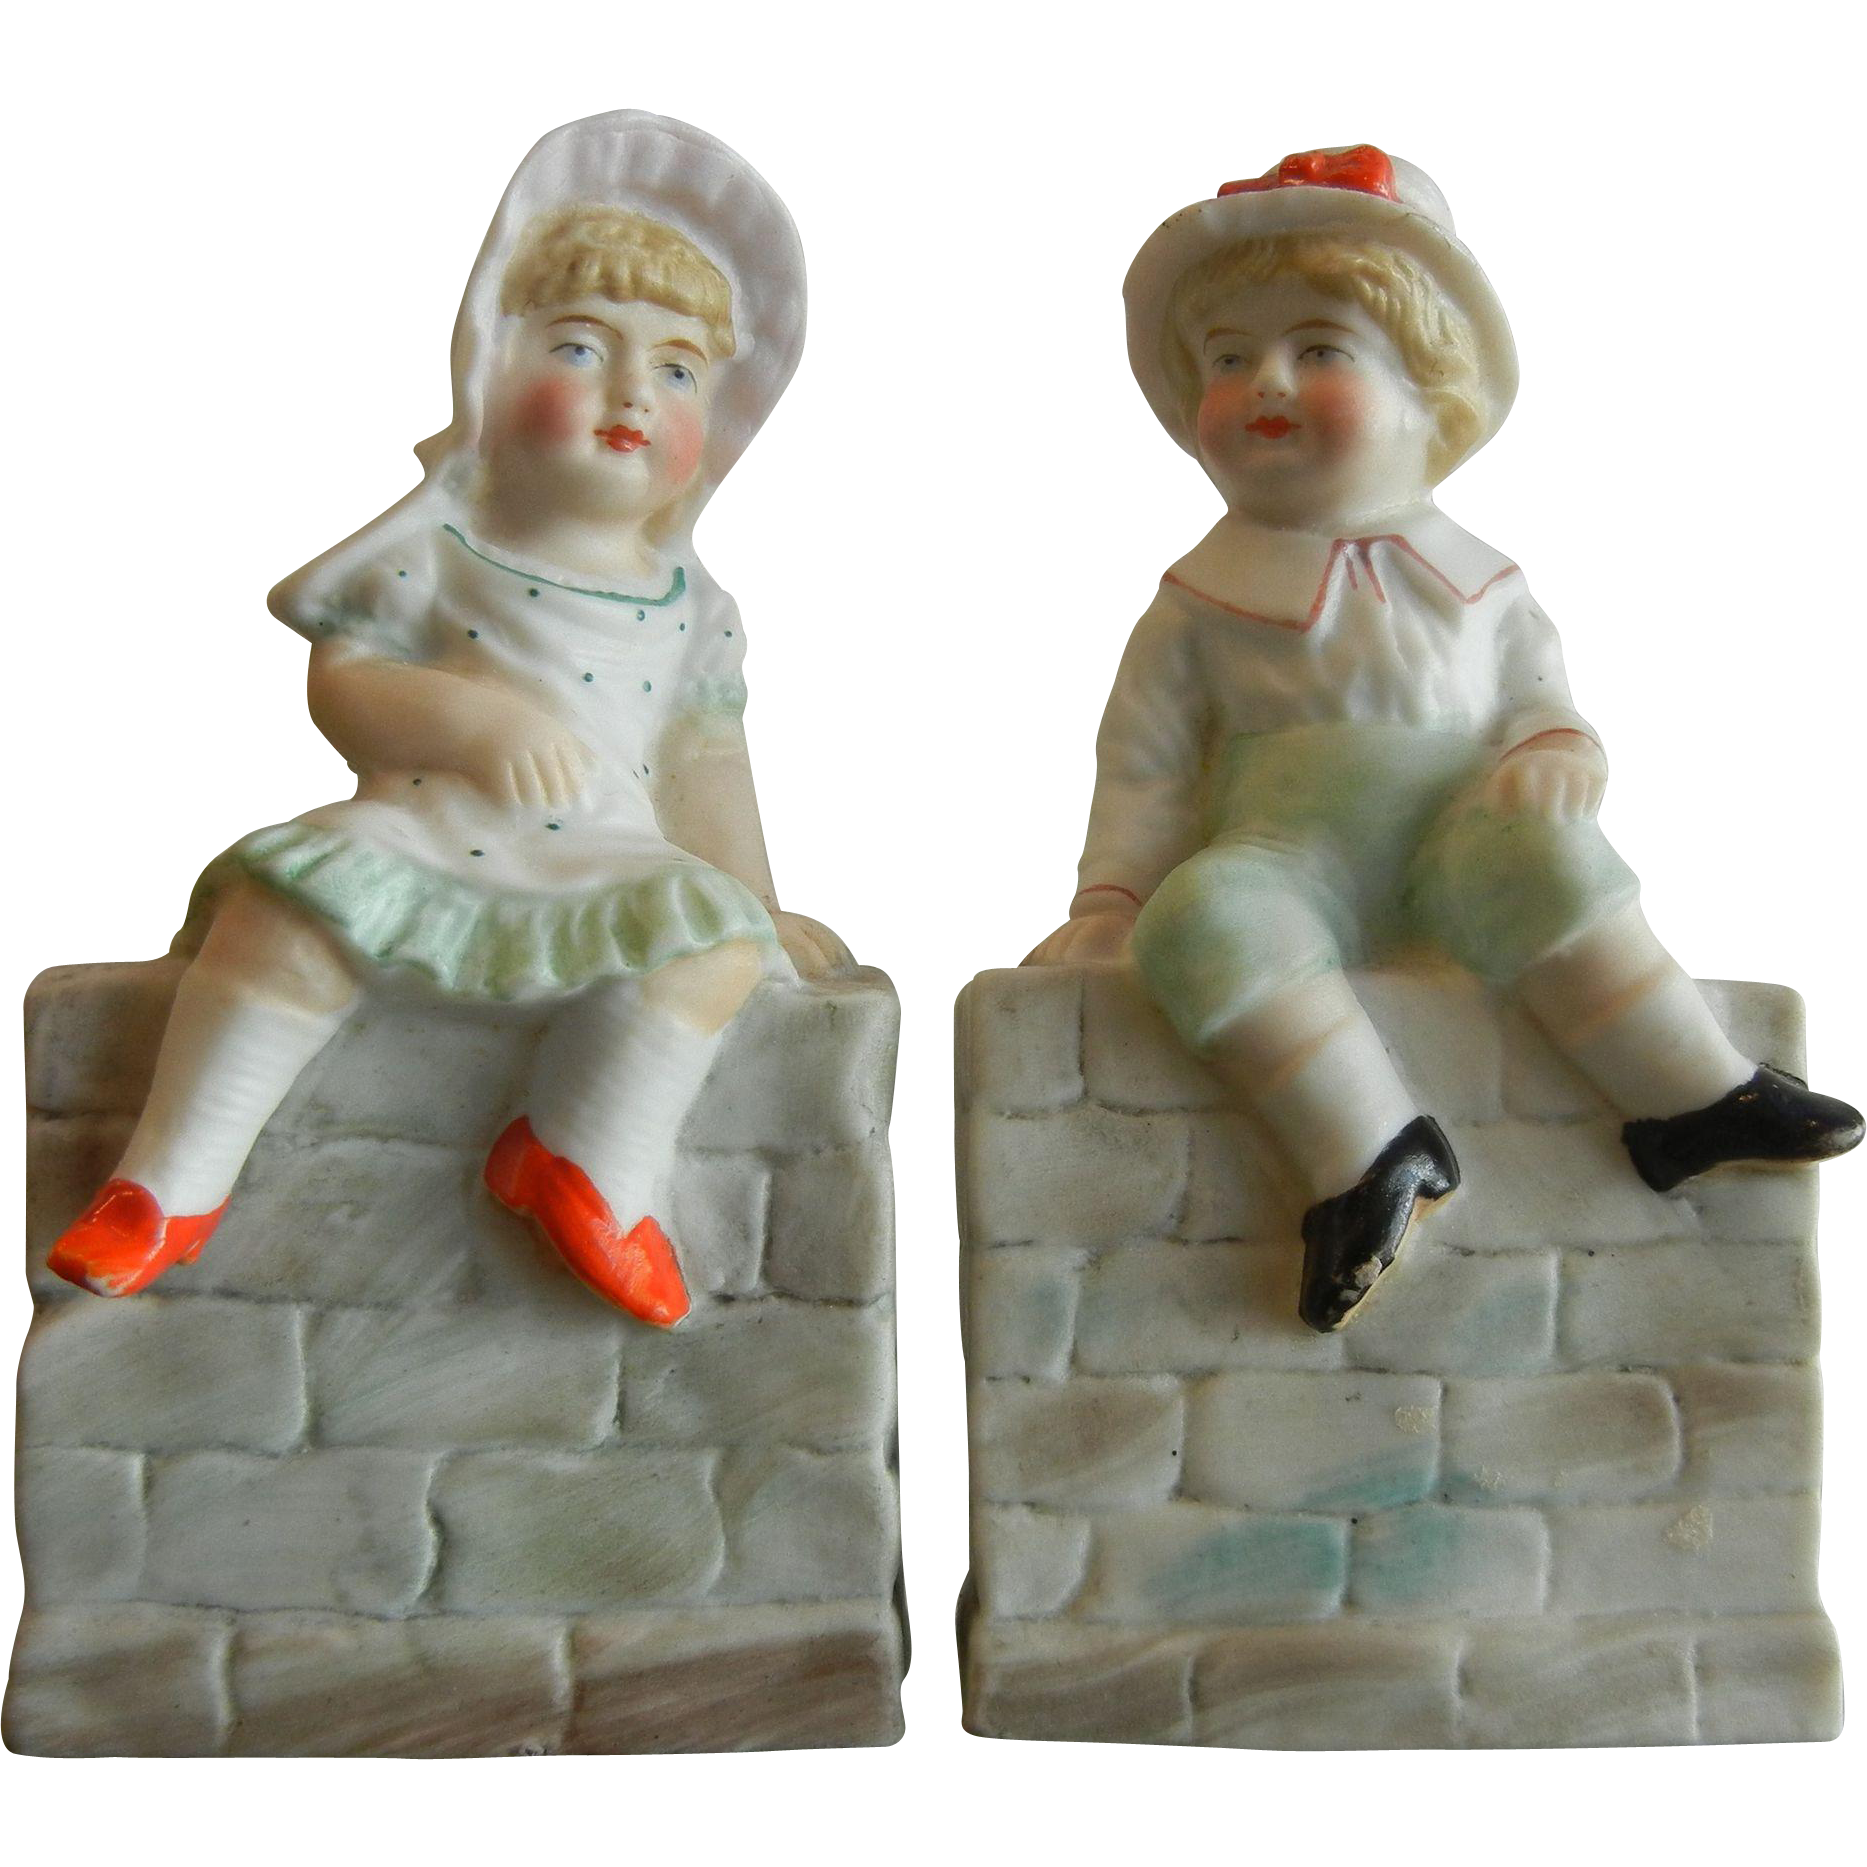 Antique German Bisque  Porcelain Figurines Boy & Girl Sitting on a Wall